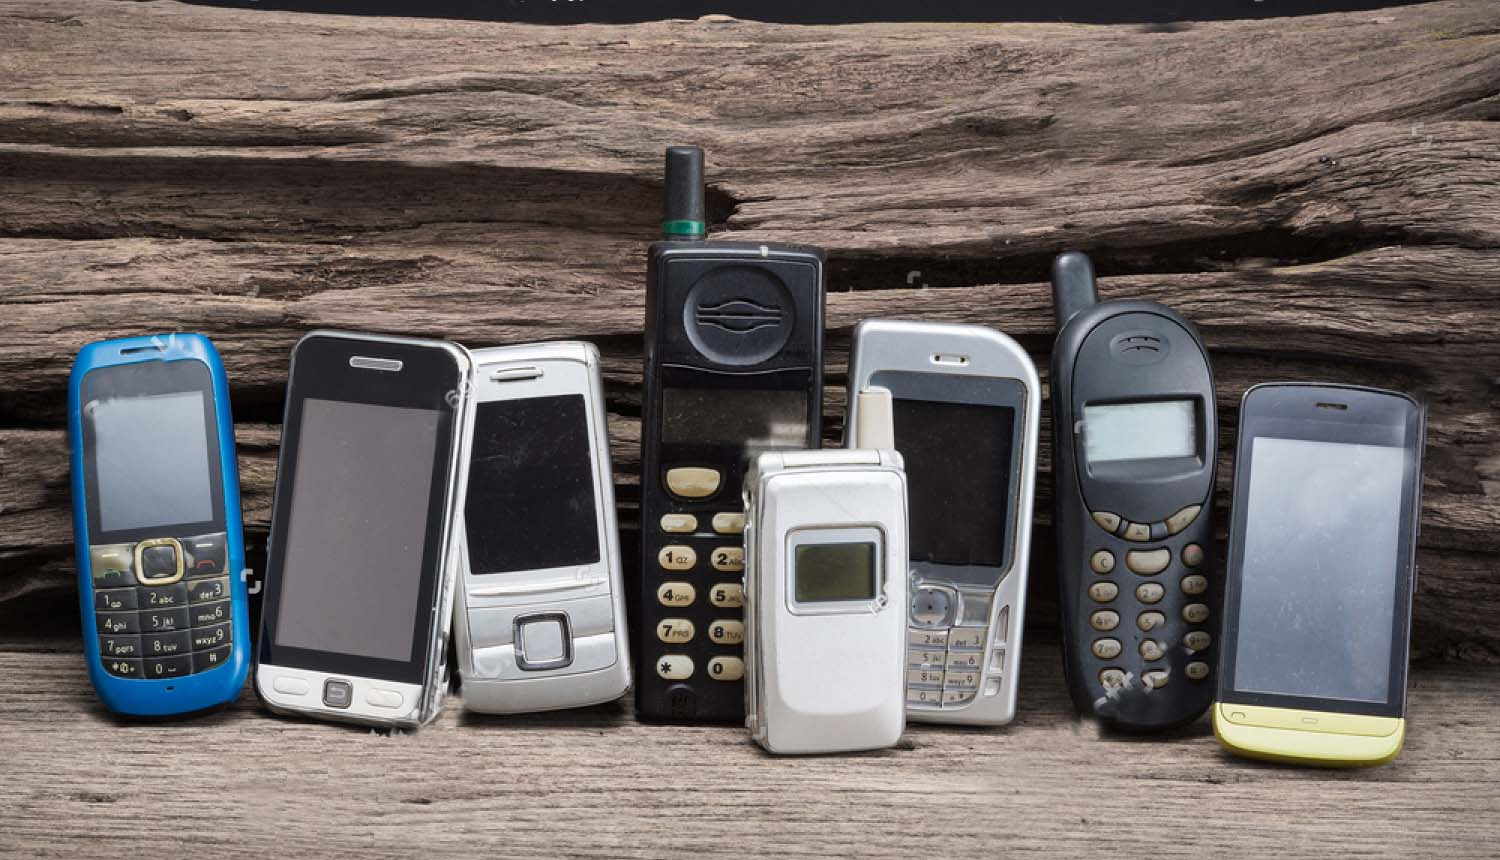 Saving The Earth With Old Mobile Phones